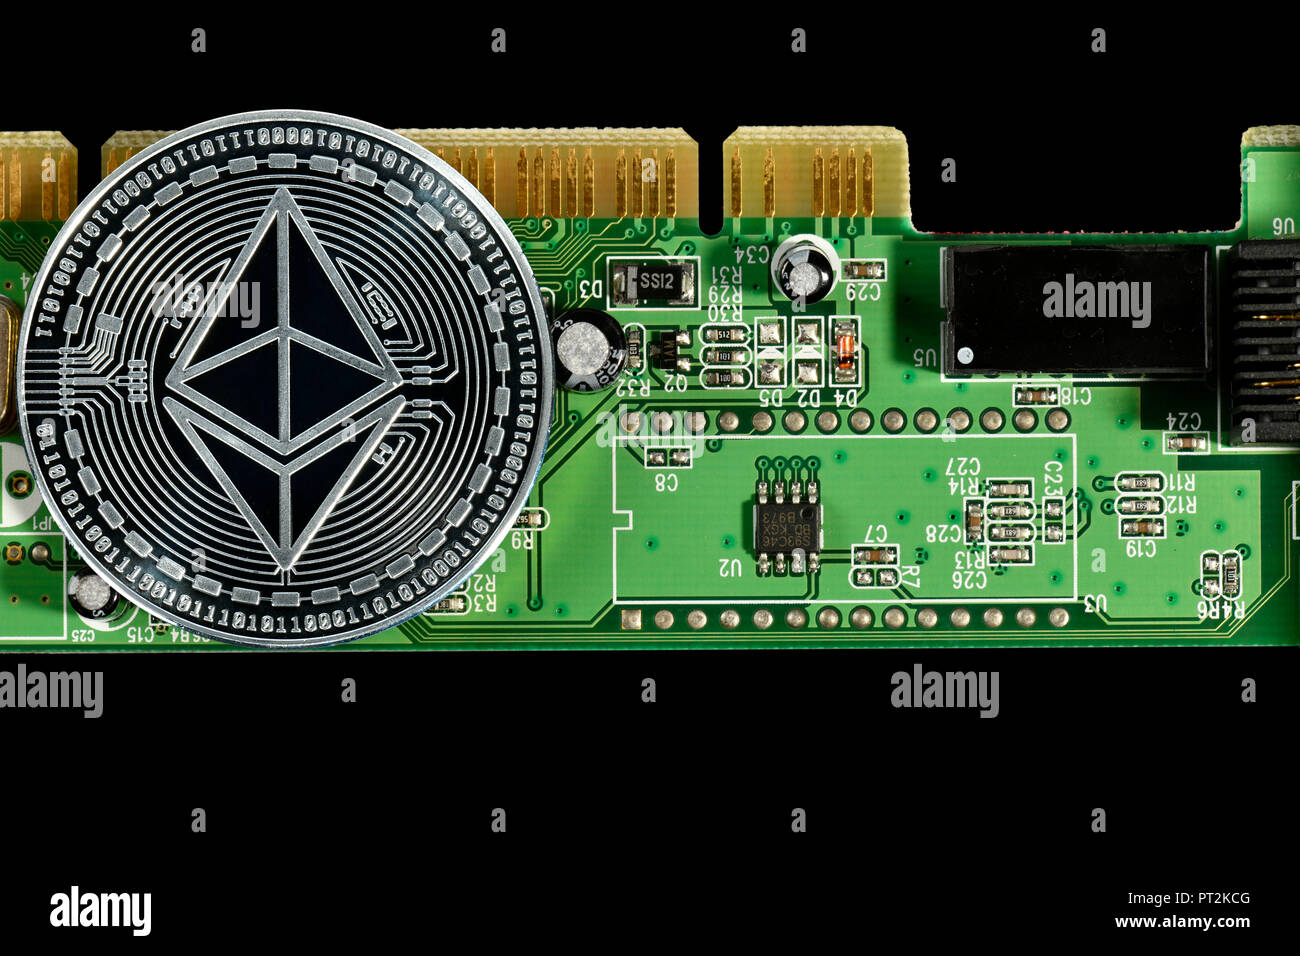 Symbolic image of digital currency, silver physical coin Ethereum on circuit board - Stock Image